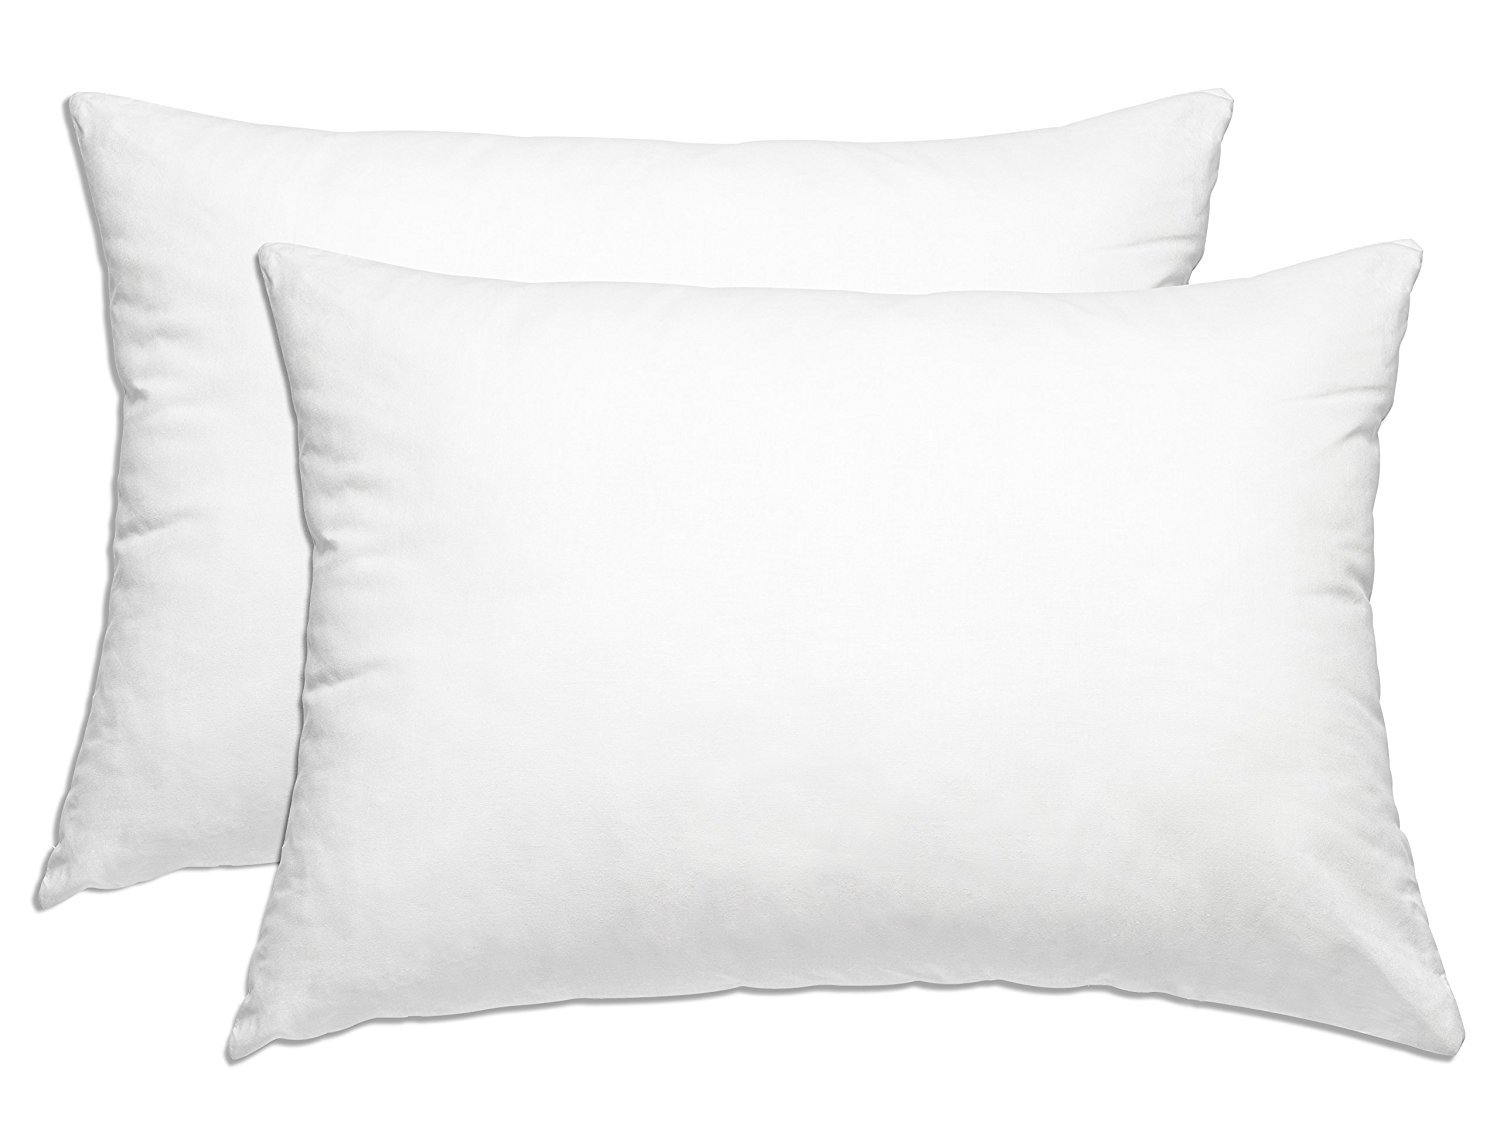 SmartHome Bedding 2-Pack Hotel Collection Plush Pillow - Down Alternative Pillows, Queen